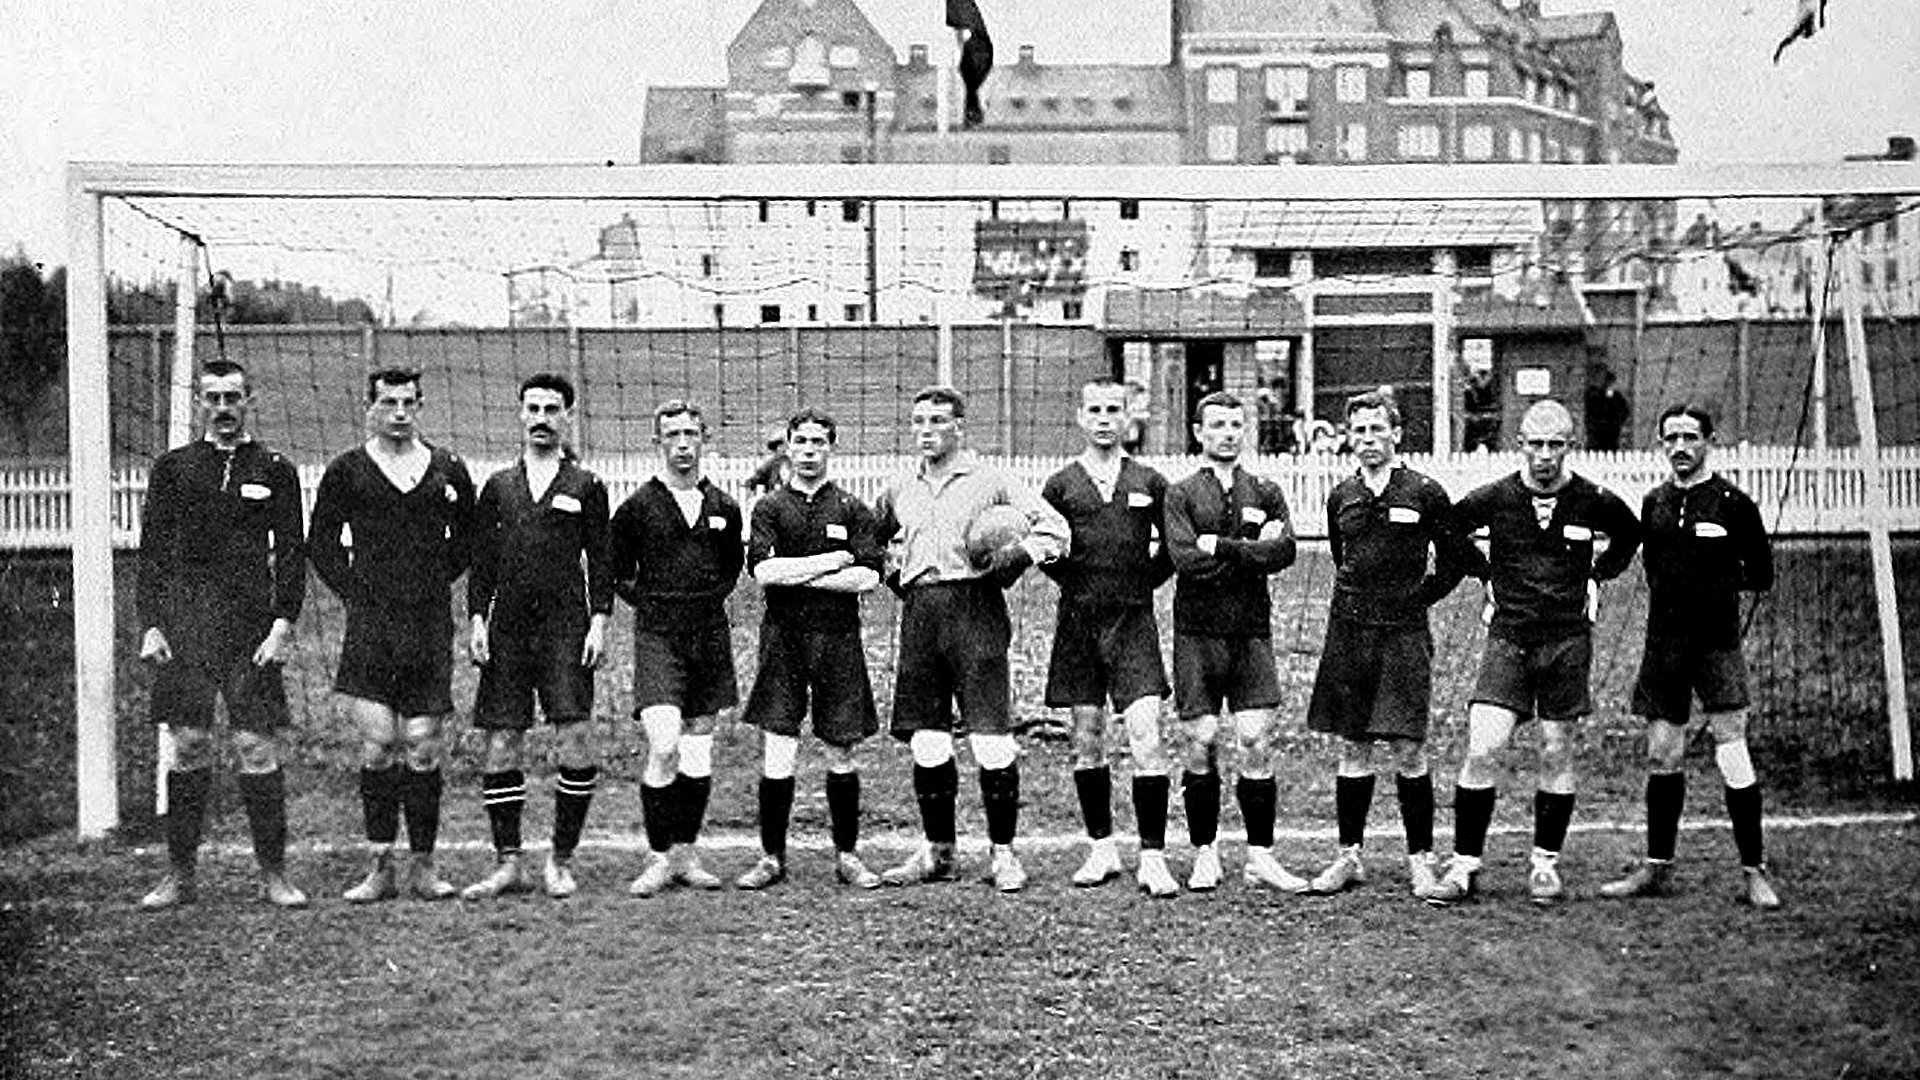 The Russian Empire national team at the 1912 Olympics.